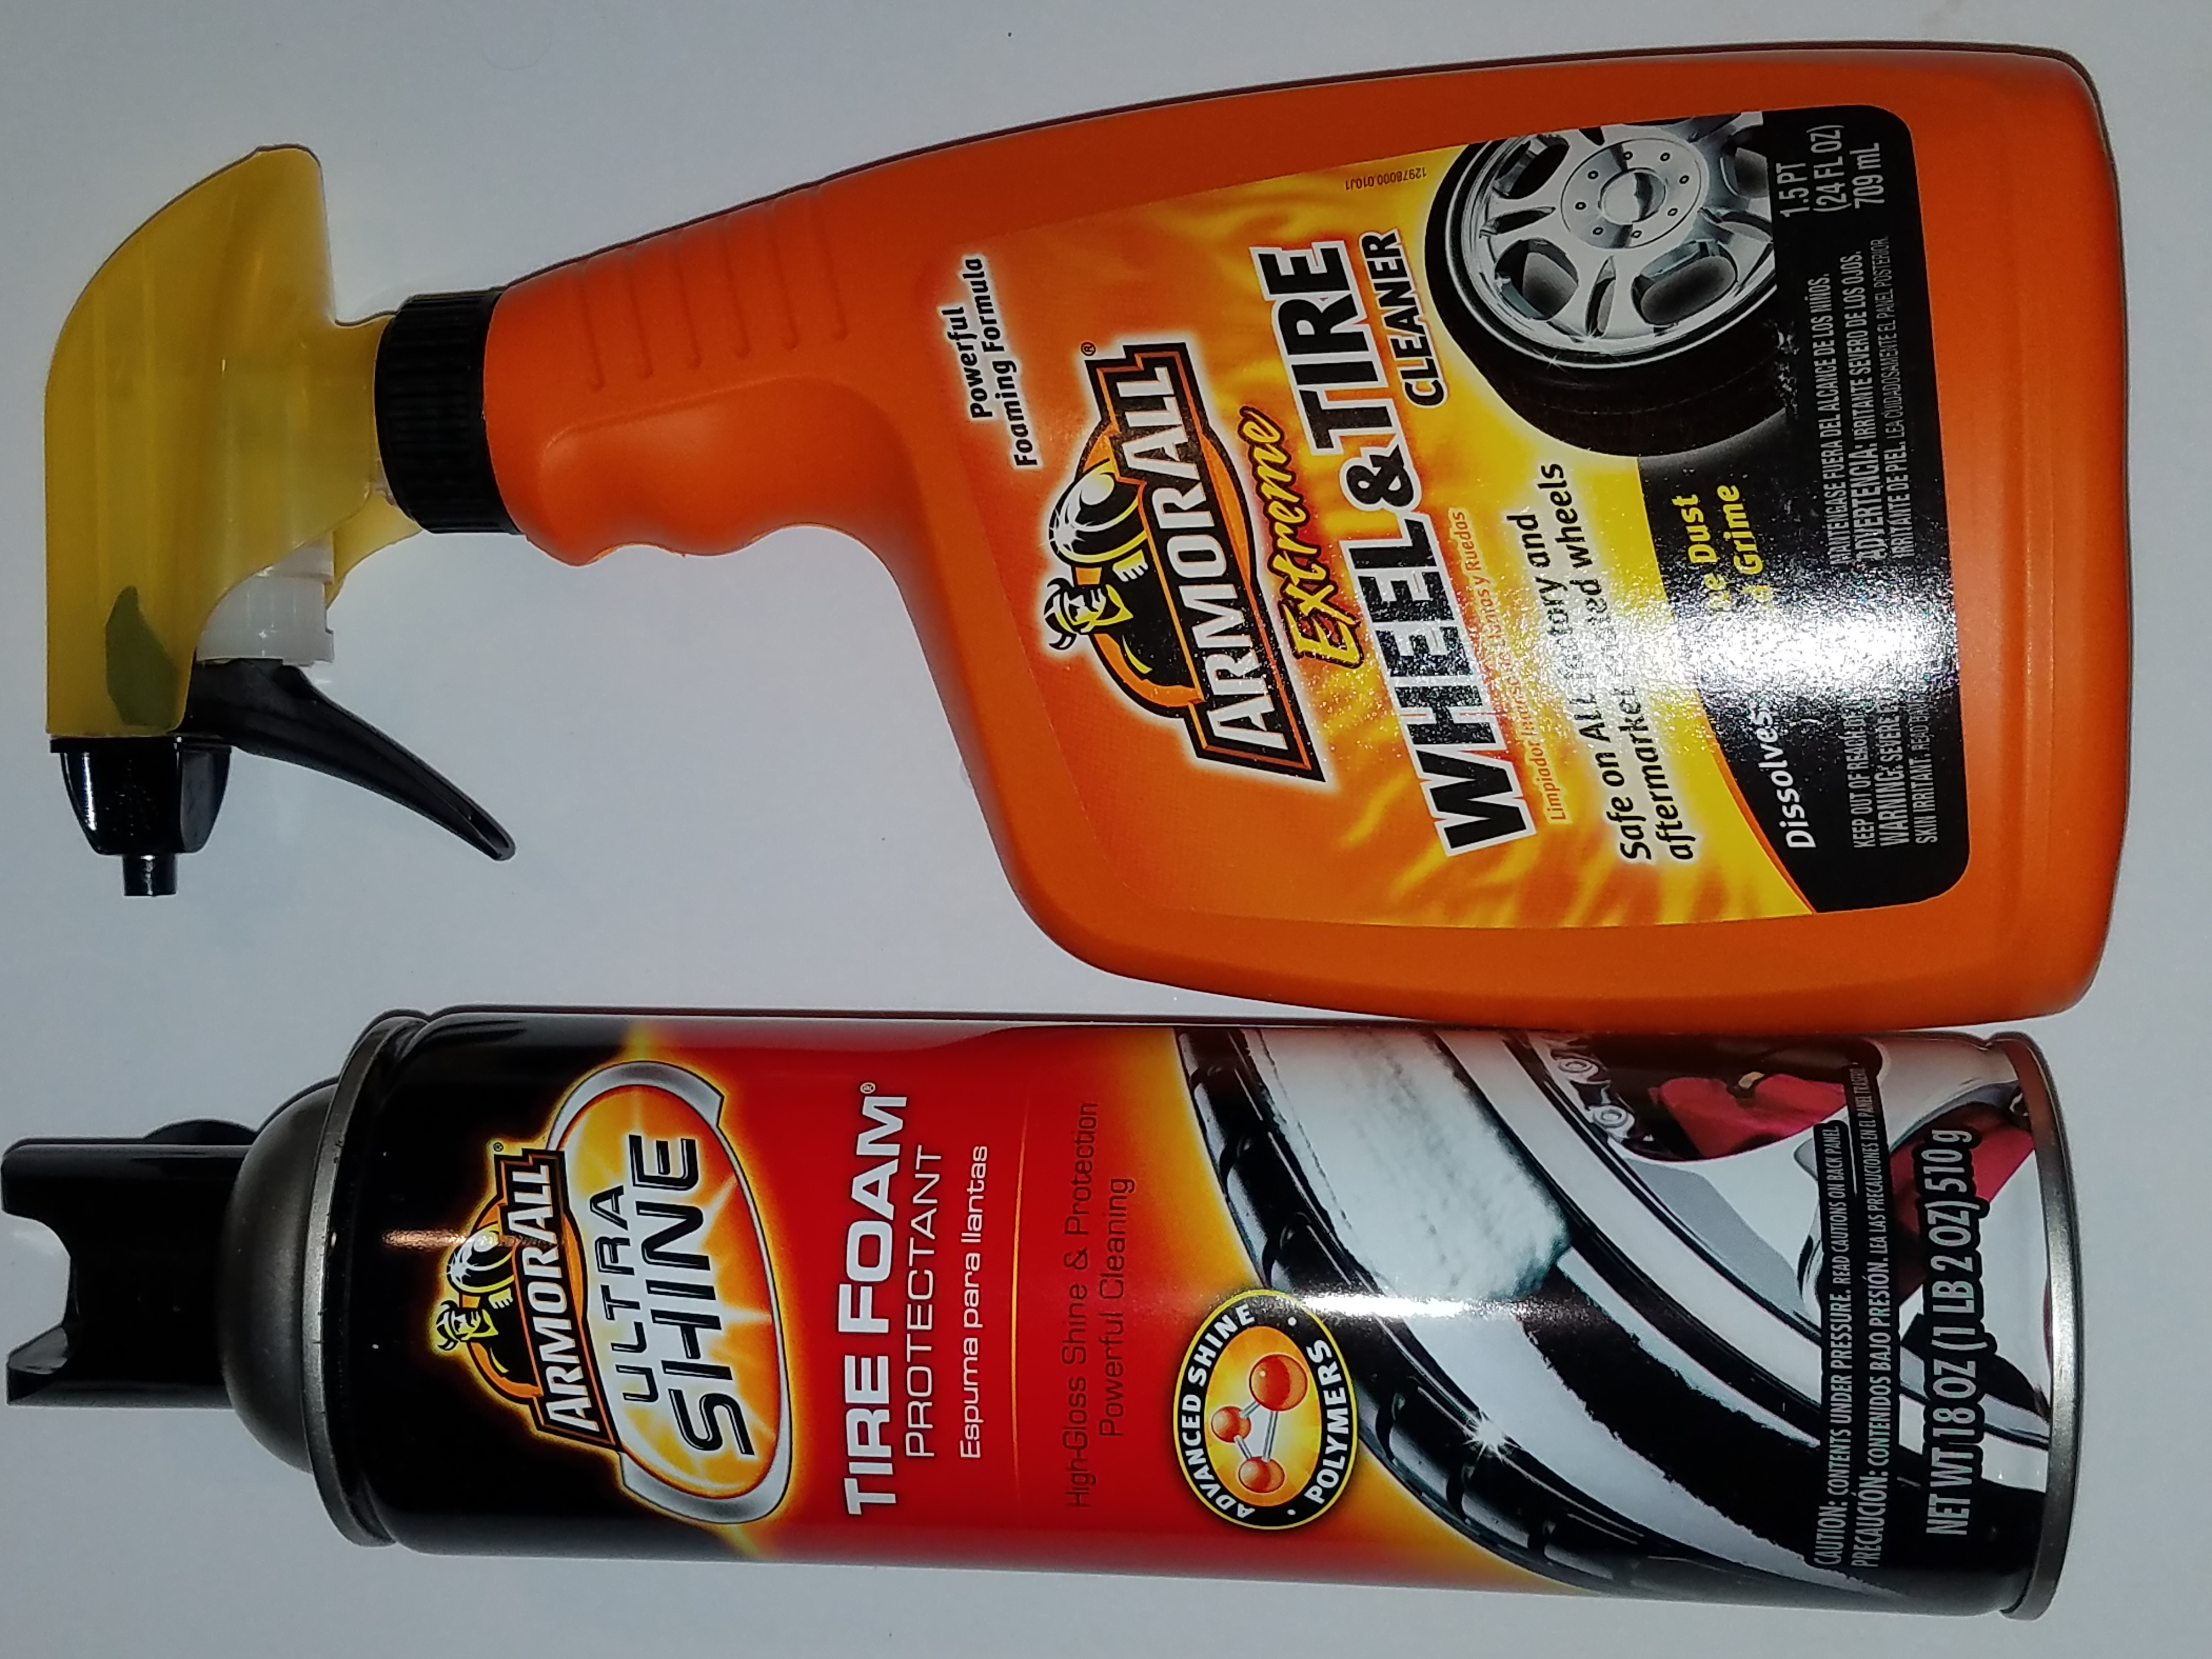 2 pc Armor All tire cleaning kit